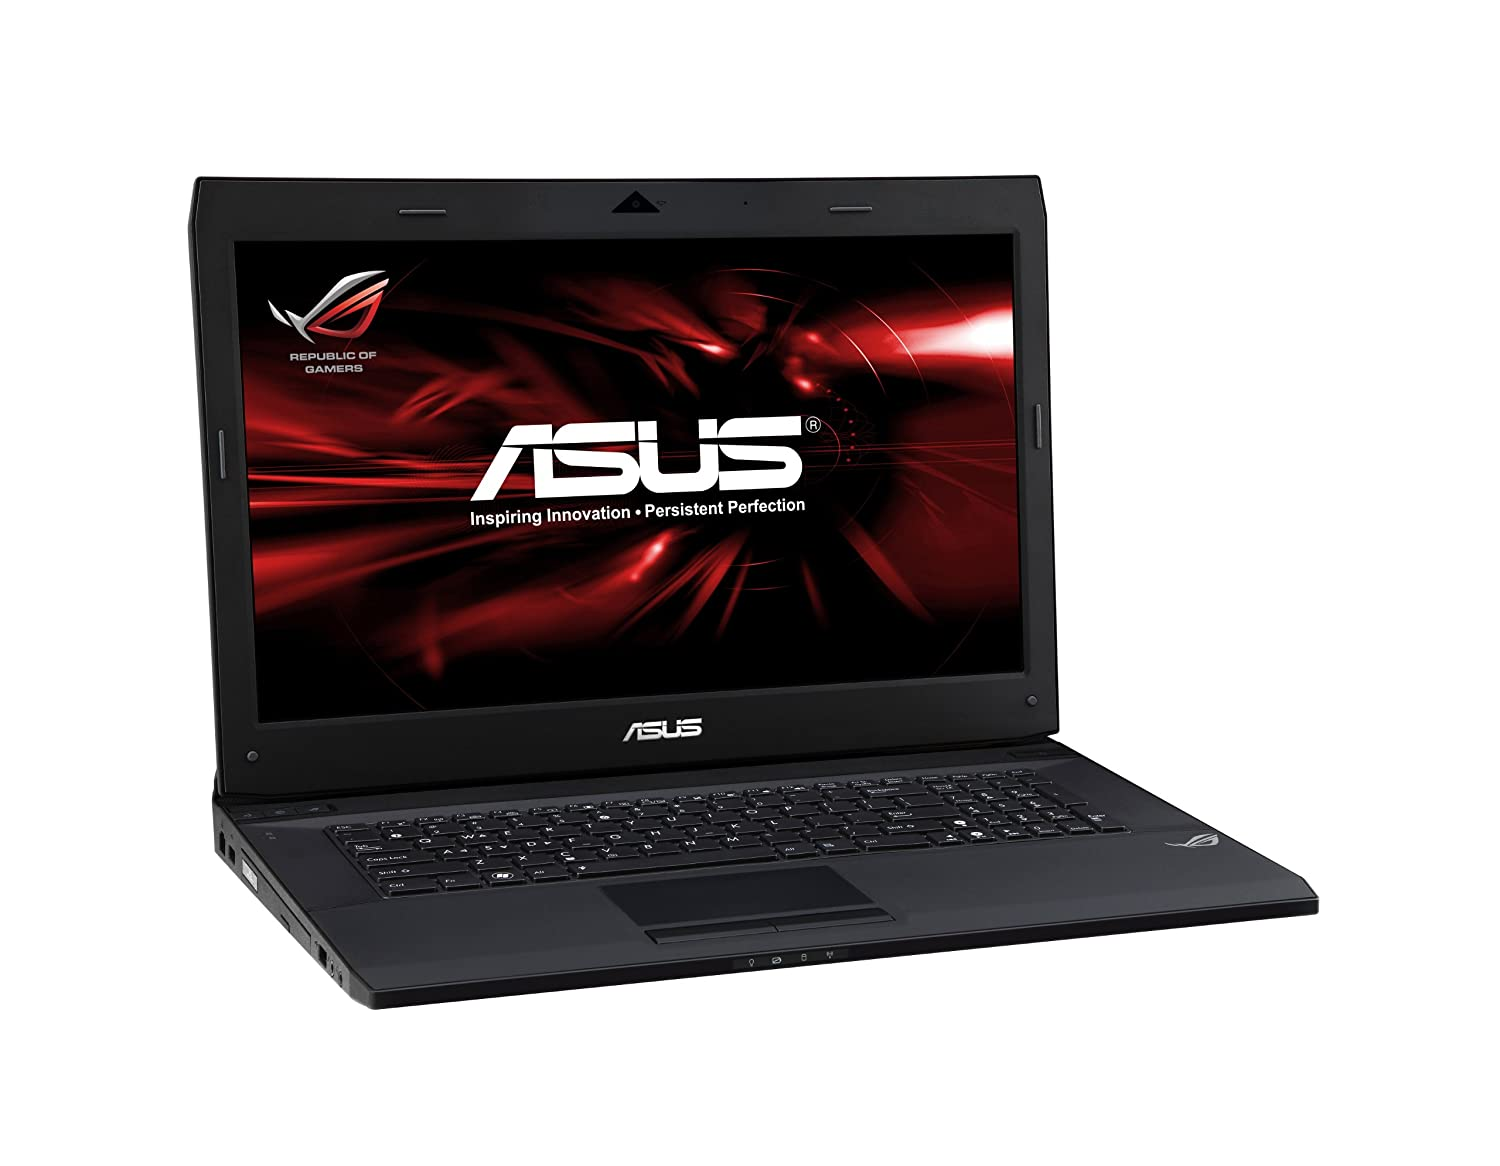 ASUS G73SW NOTEBOOK TURBO BOOST MONITOR WINDOWS 8 DRIVERS DOWNLOAD